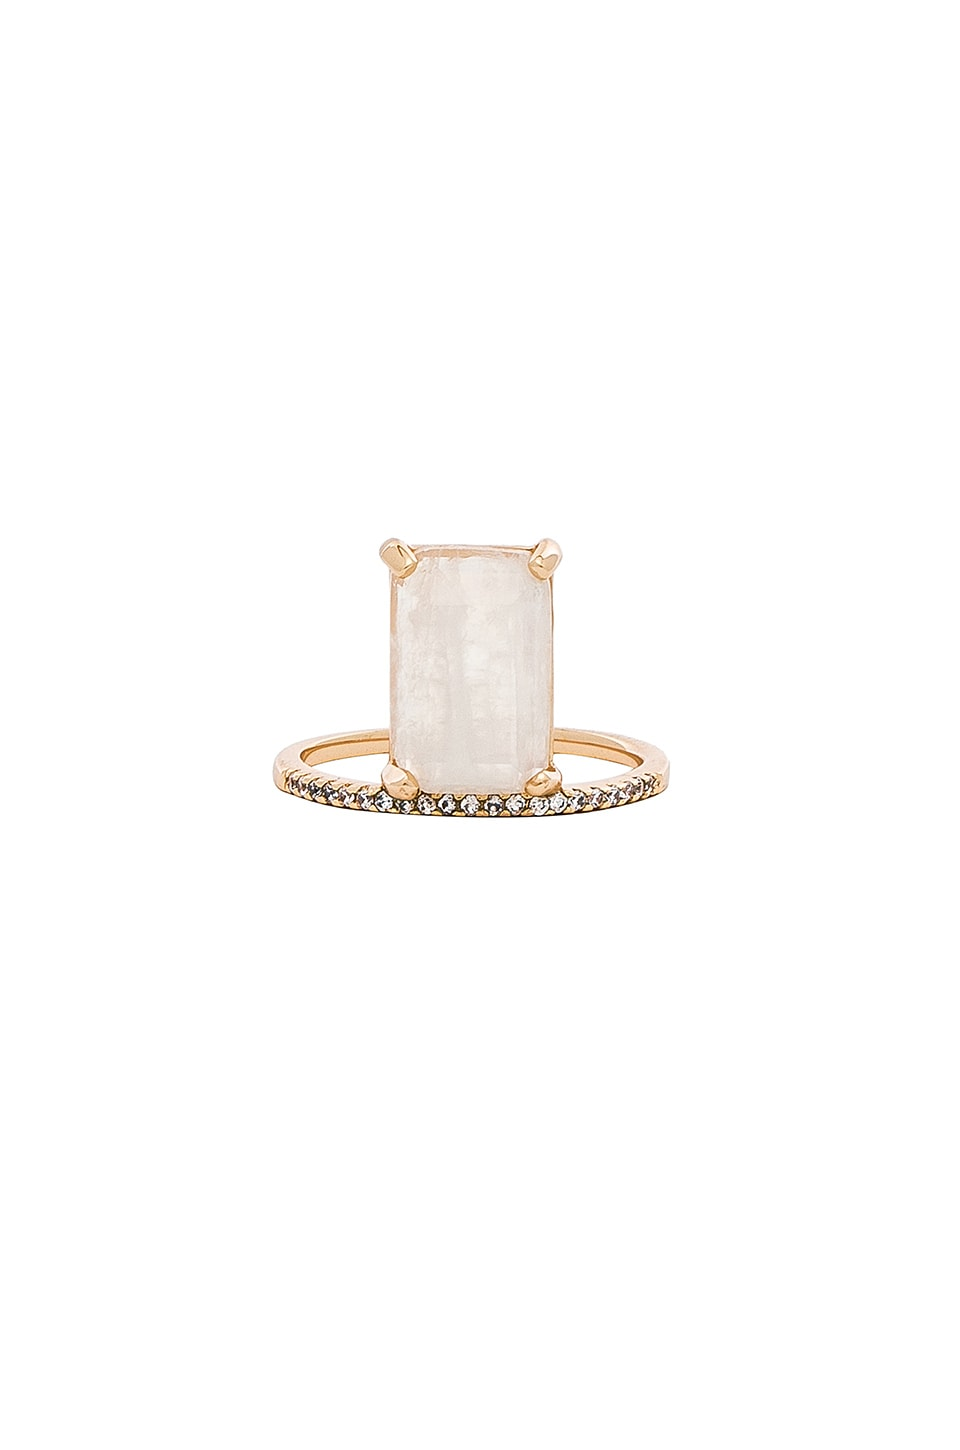 MELANIE AULD Emerald Cut Stacking Ring in Metallic Gold